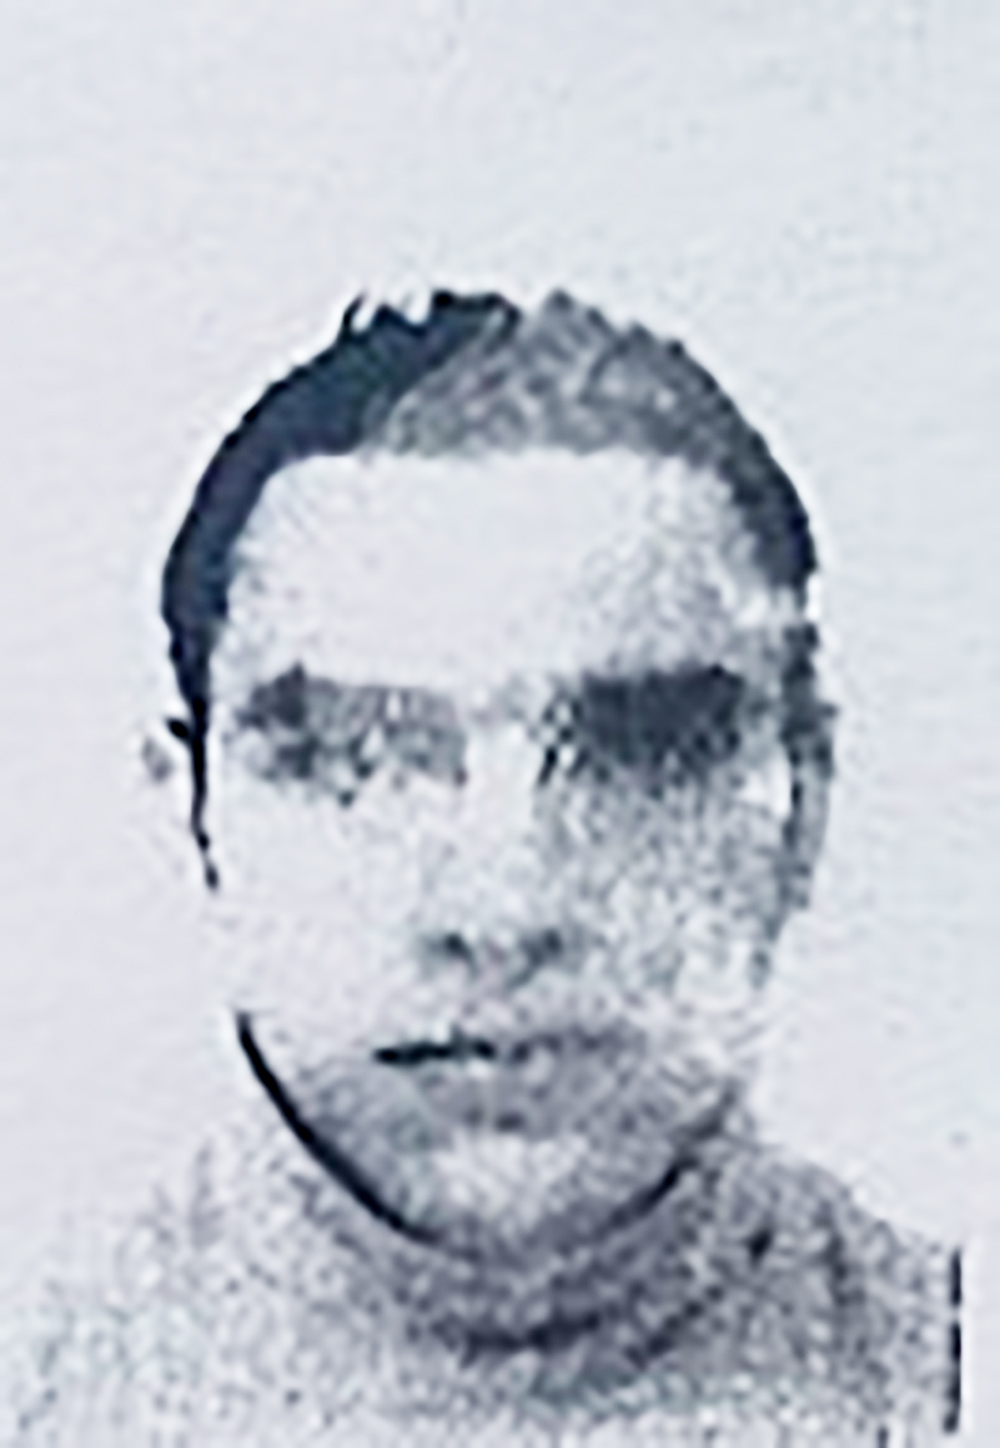 This image obtained by AFP from a French police source on July 15, 2016, shows a reproduction of the picture on the residence permit of Mohamed Lahouaiej Bouhlel